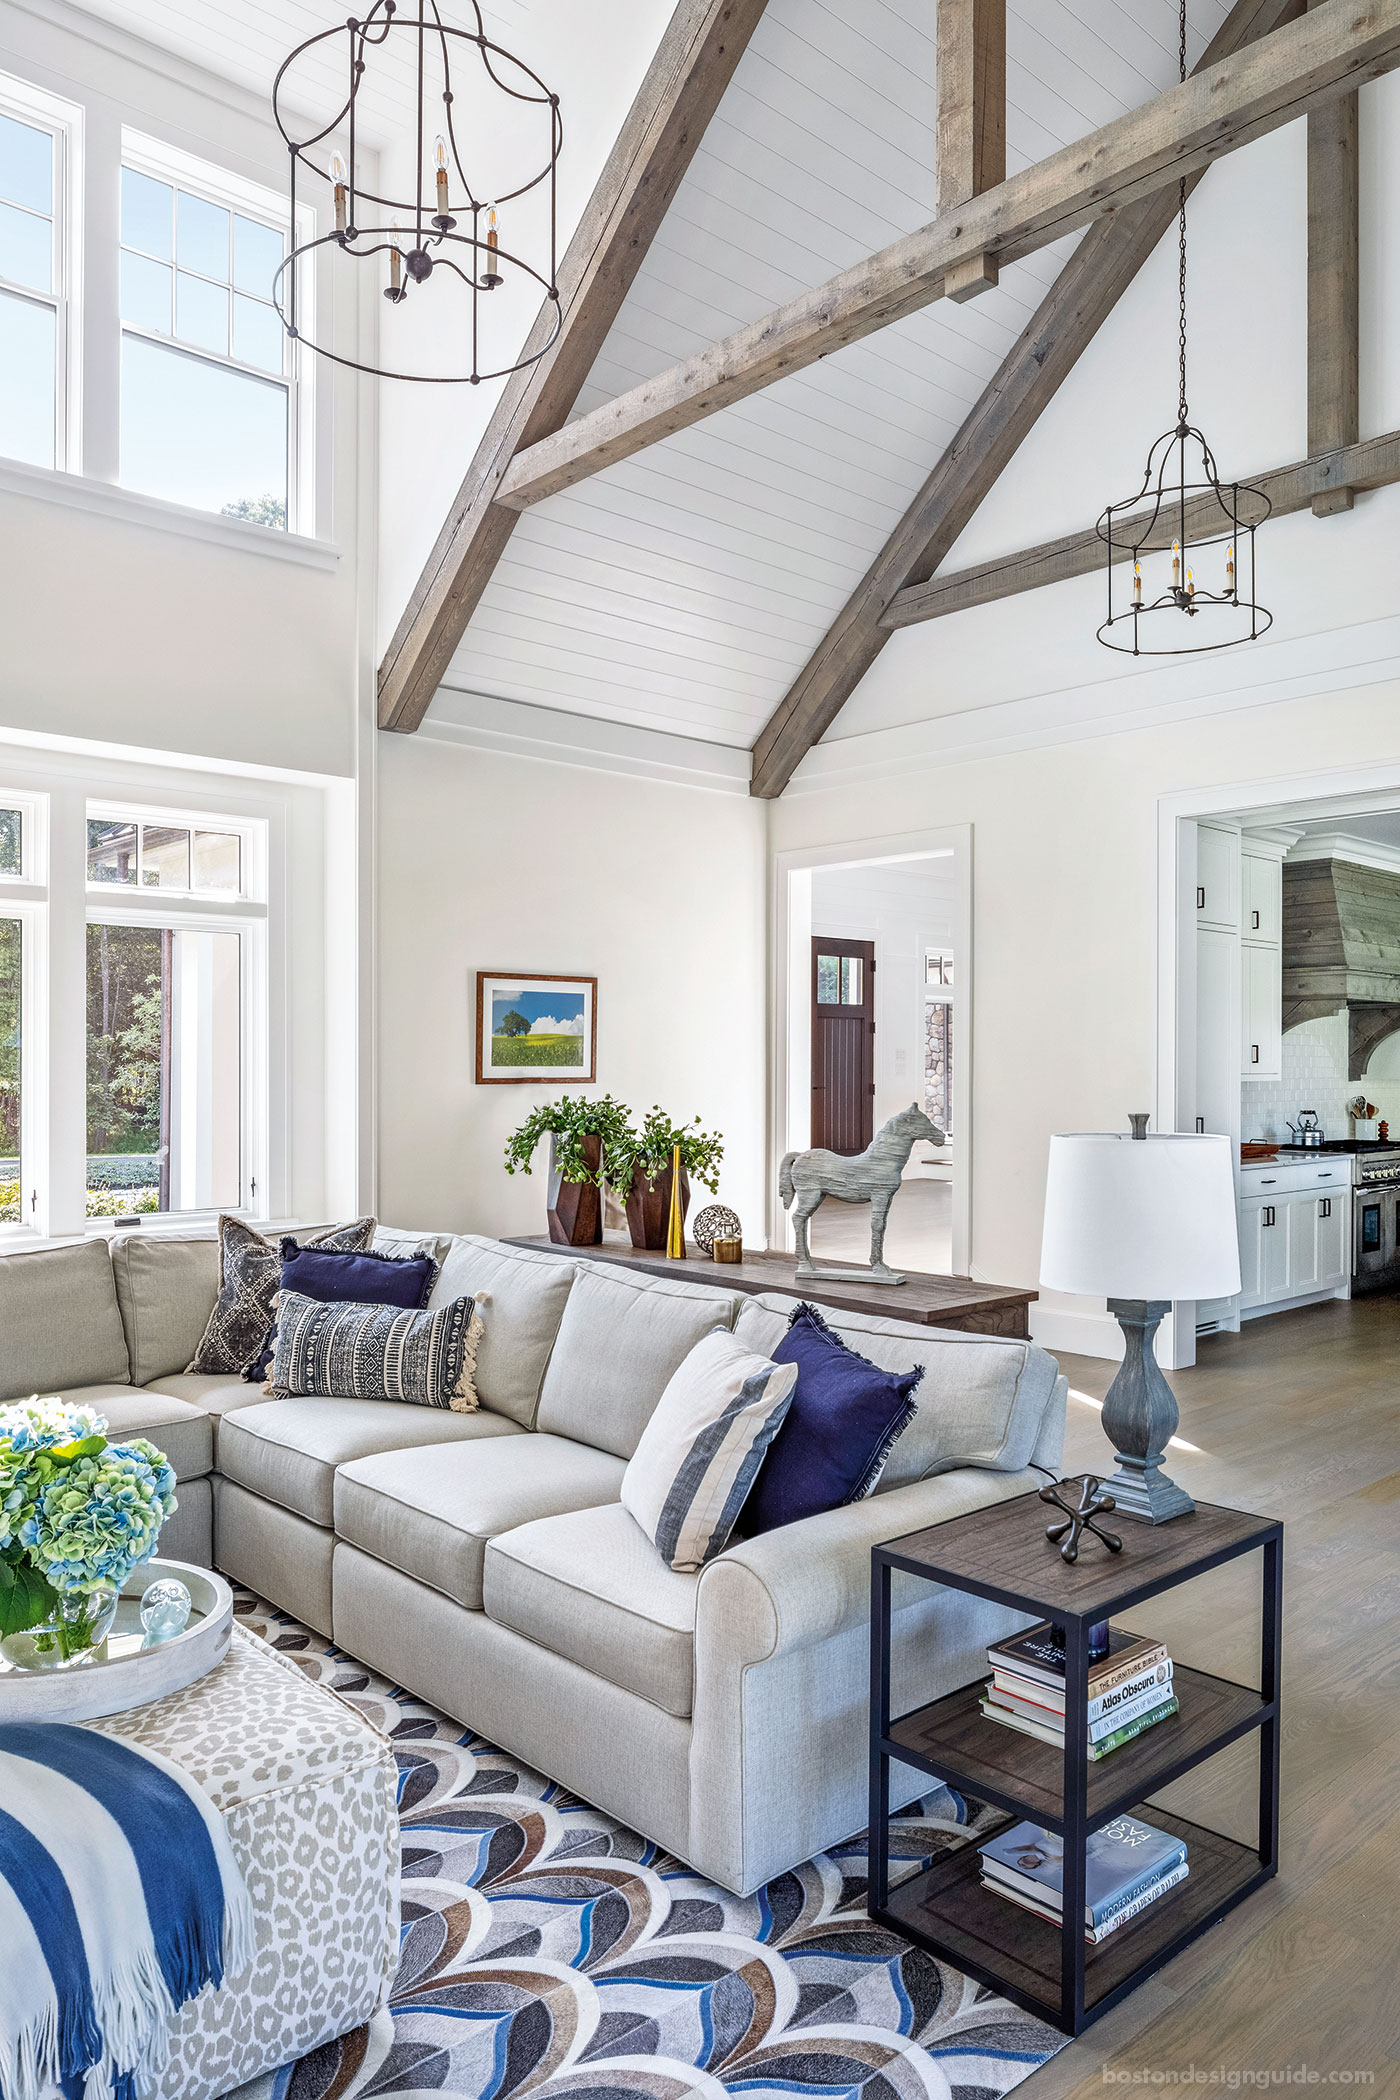 Great room with cathedral ceiings in a farmhouse style New England home